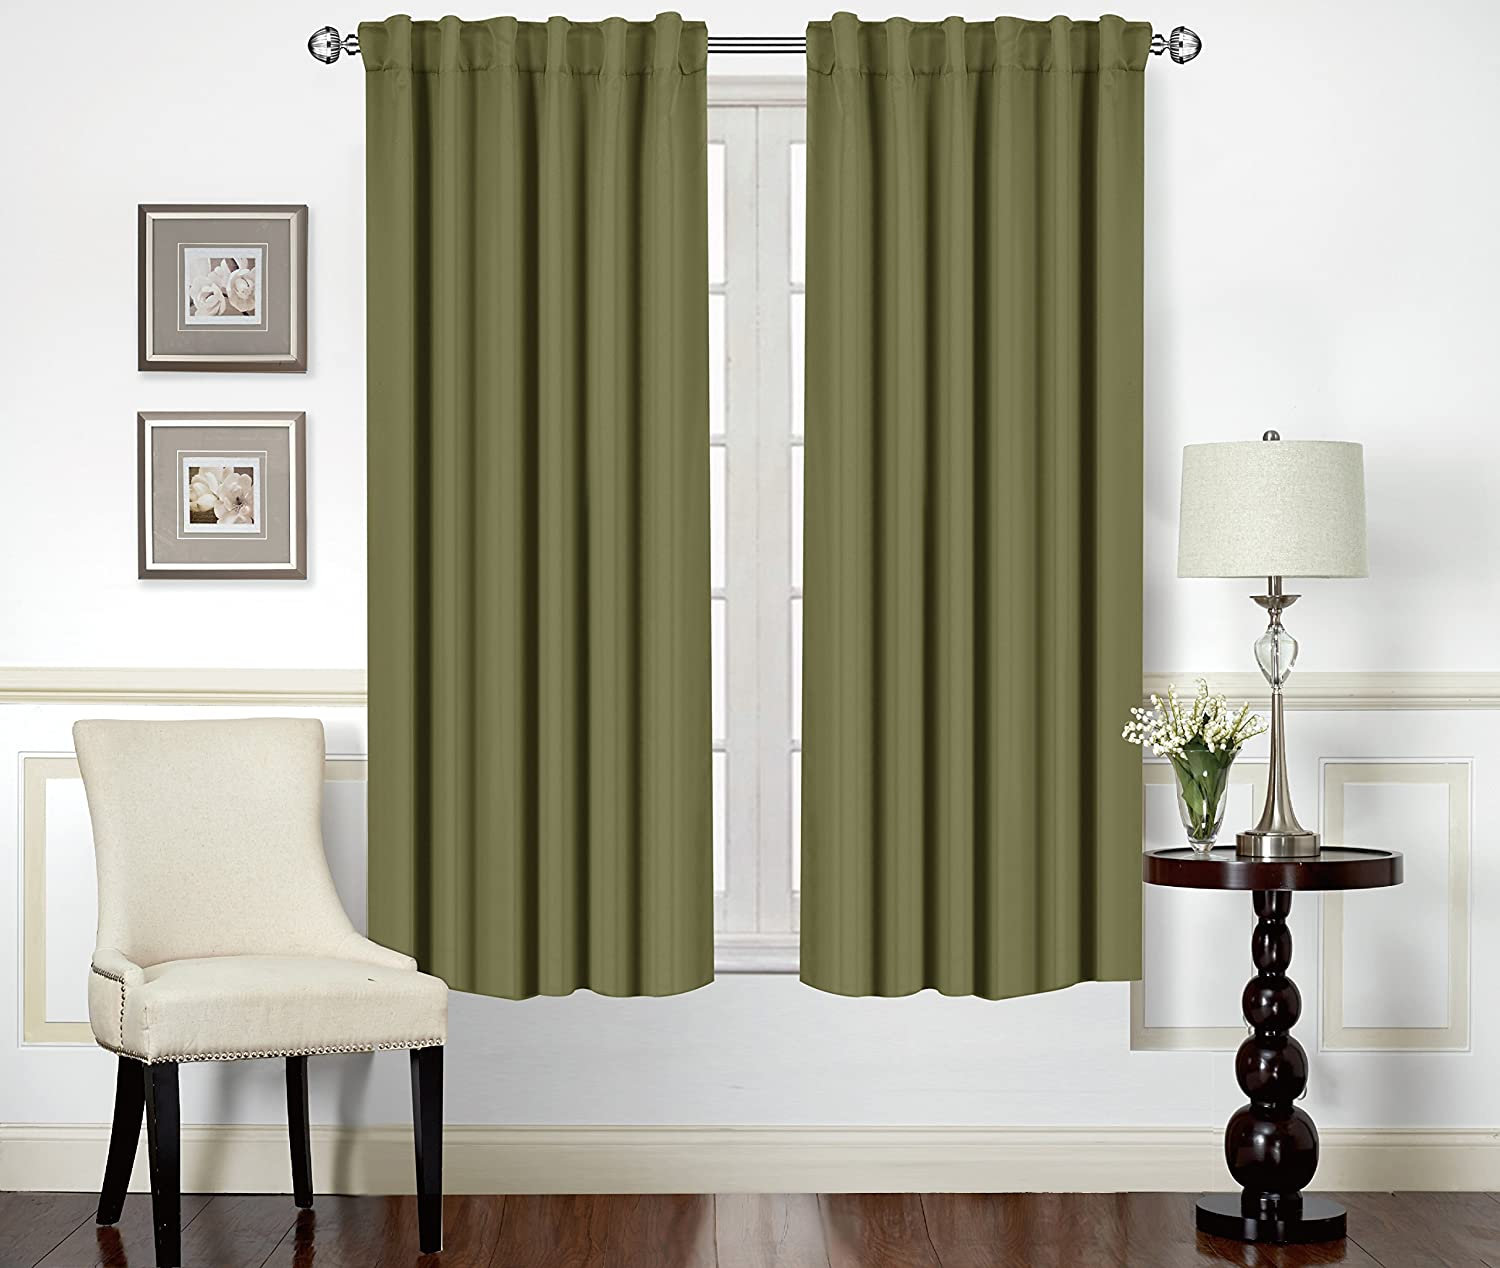 Blackout Room Darkening Curtains Window Panel Drapes - Olive Color 2 Panel Set